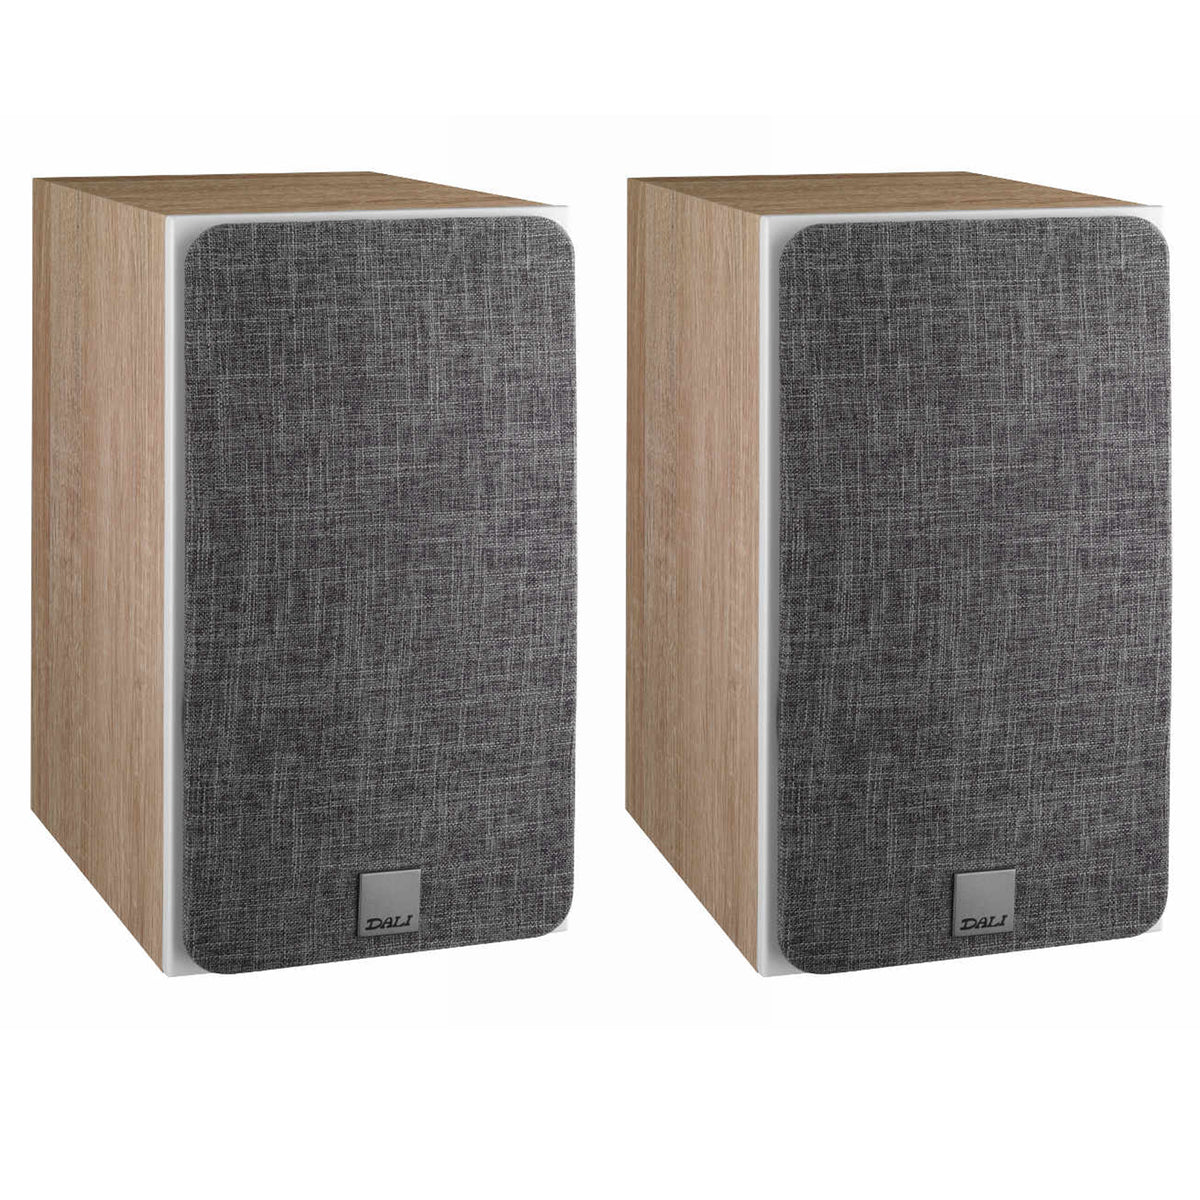 Dali: Oberon 3 Passive Bookshelf Speakers - Light Oak (Pair)